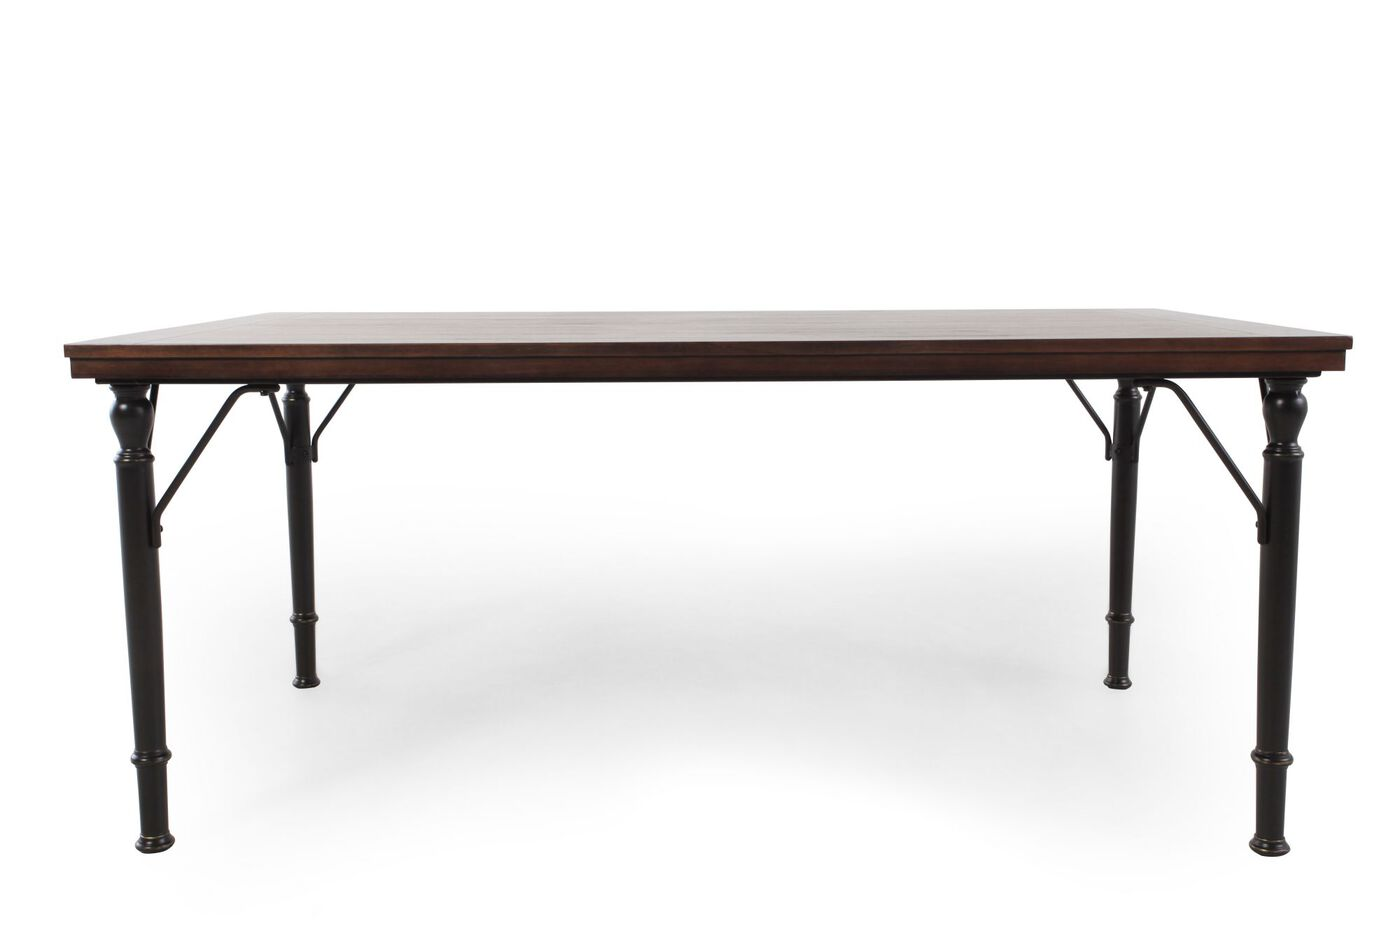 Ashley Tripton Dining Table Mathis Brothers Furniture : ASH D53004725 from mathisbrothers.com size 1400 x 933 jpeg 39kB